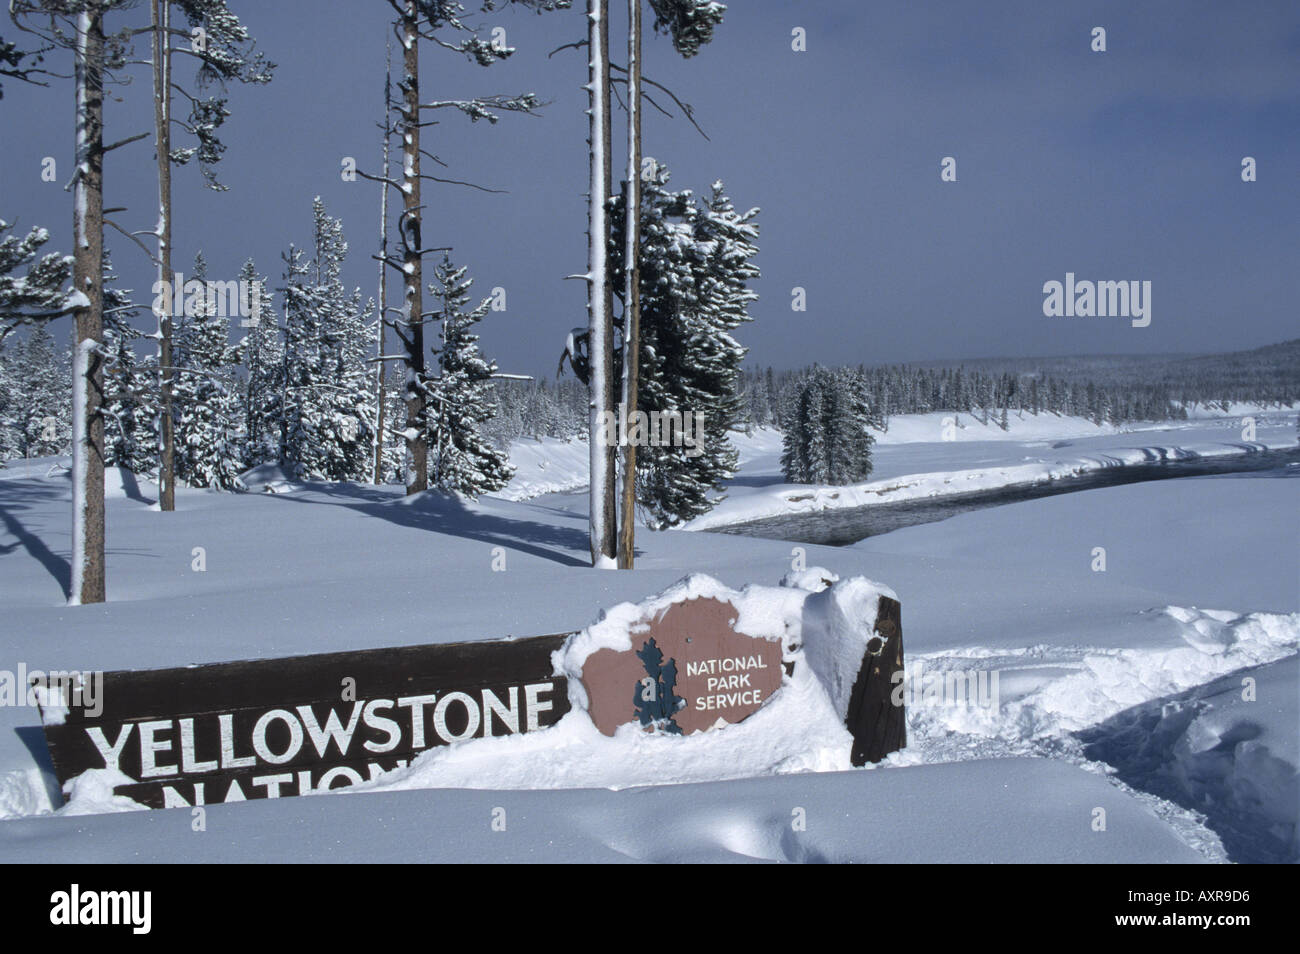 Snow Covered Yellowstone National Park Sign In Winter